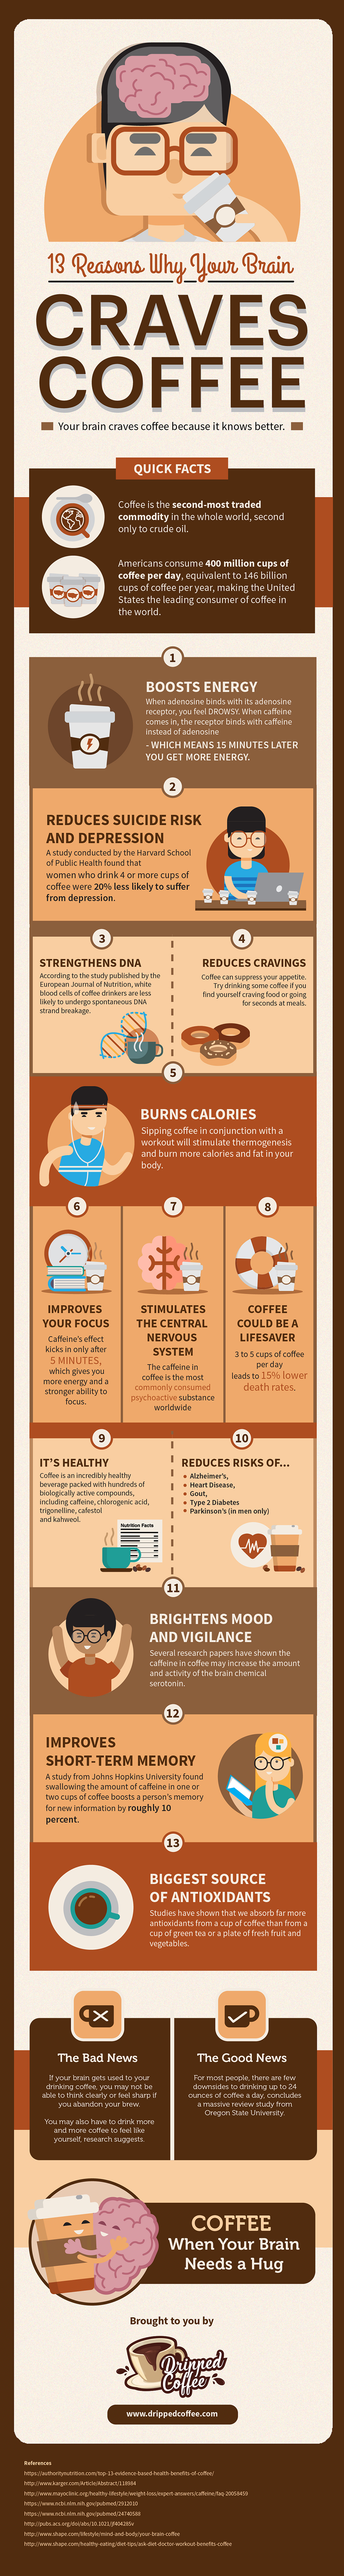 13 Reasons Why Your Brain Craves Coffee [Infographic]